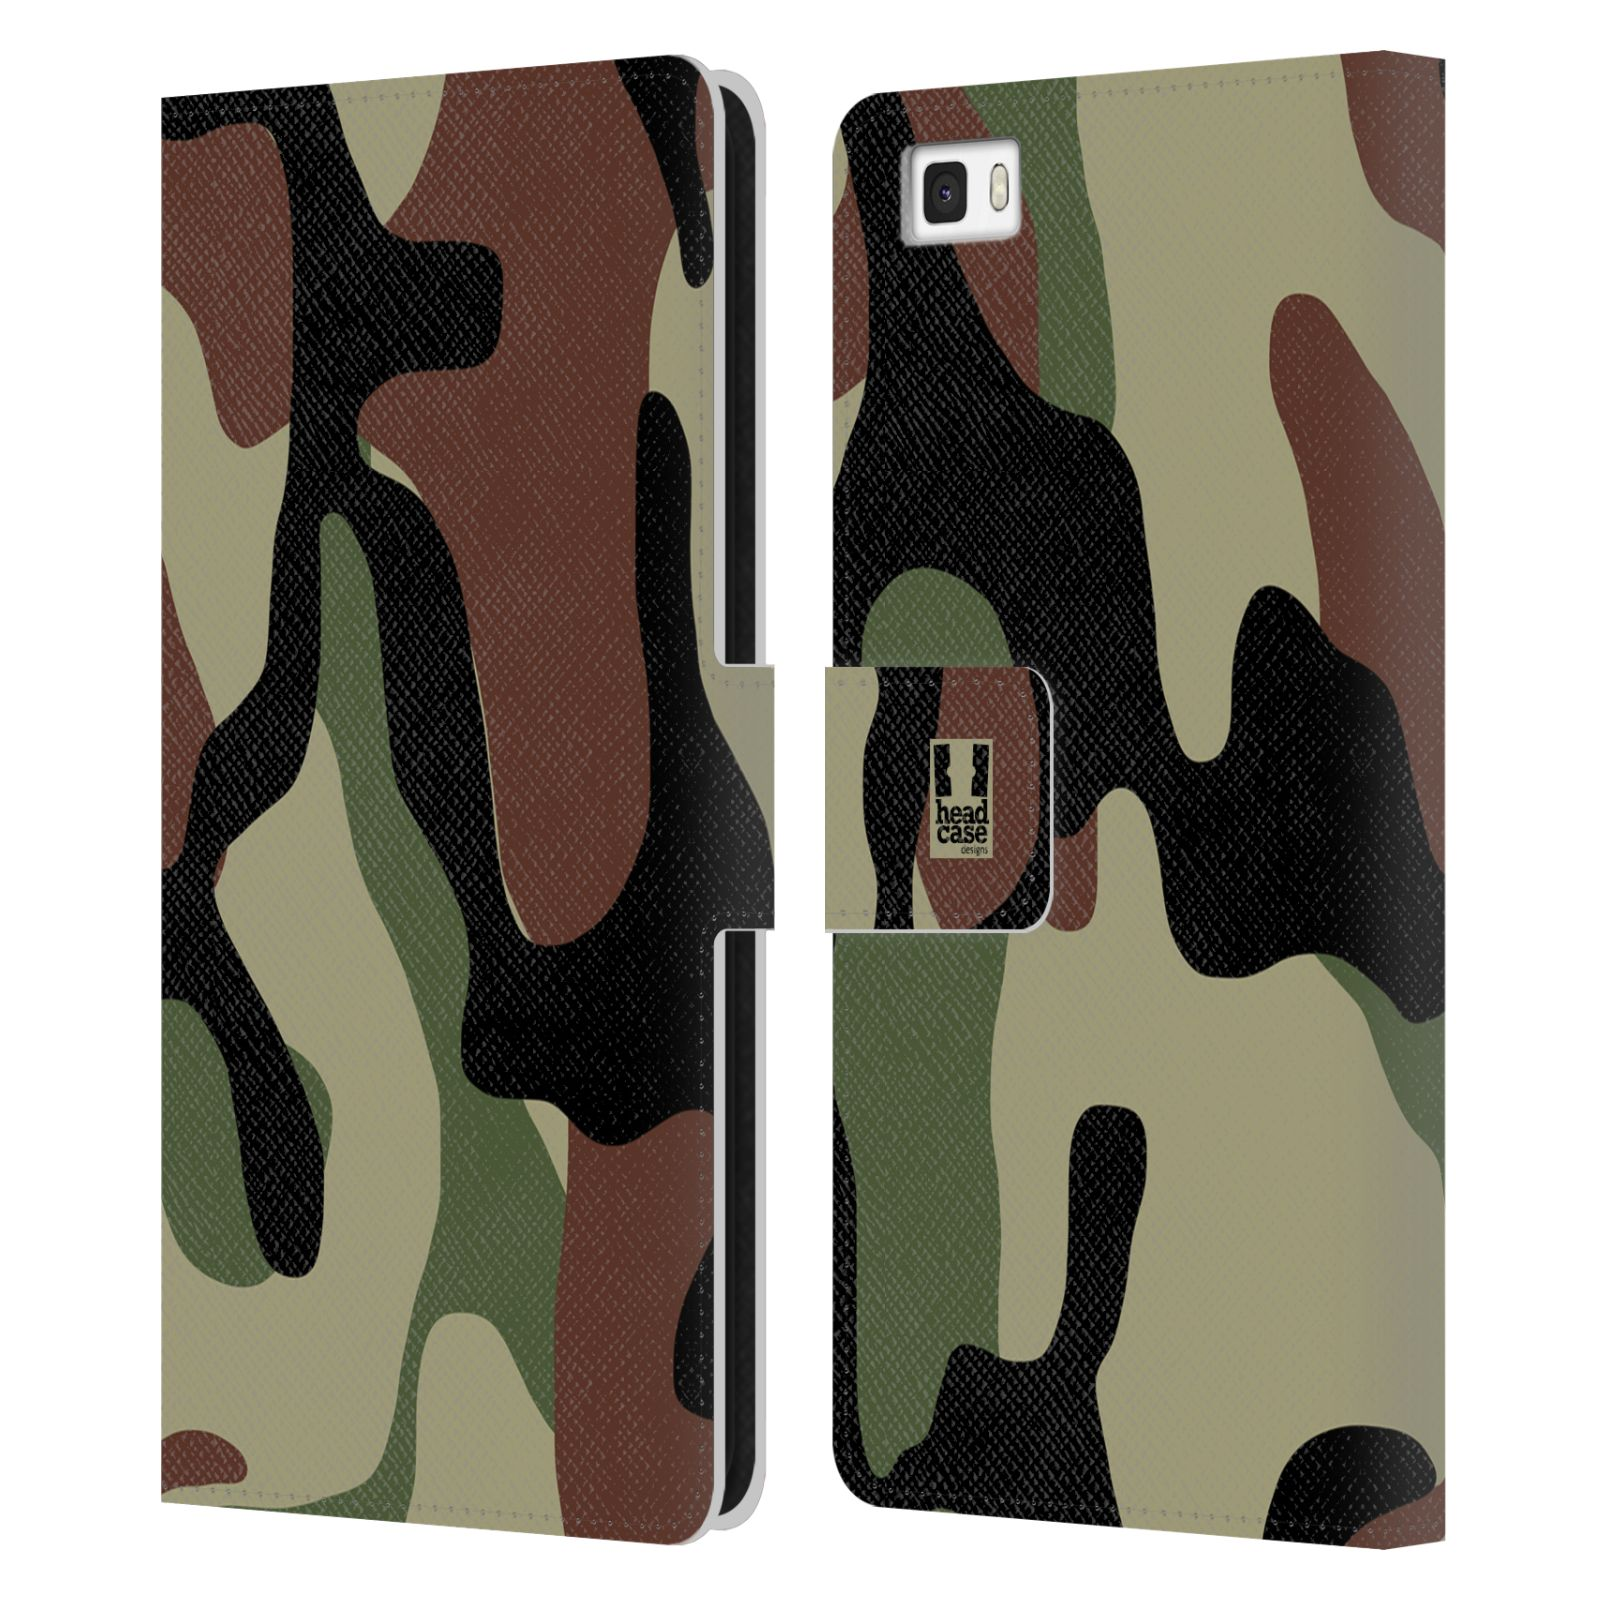 HEAD CASE DESIGNS MILITARY CAMO LEATHER BOOK WALLET CASE COVER FOR HUAWEI P8LITE